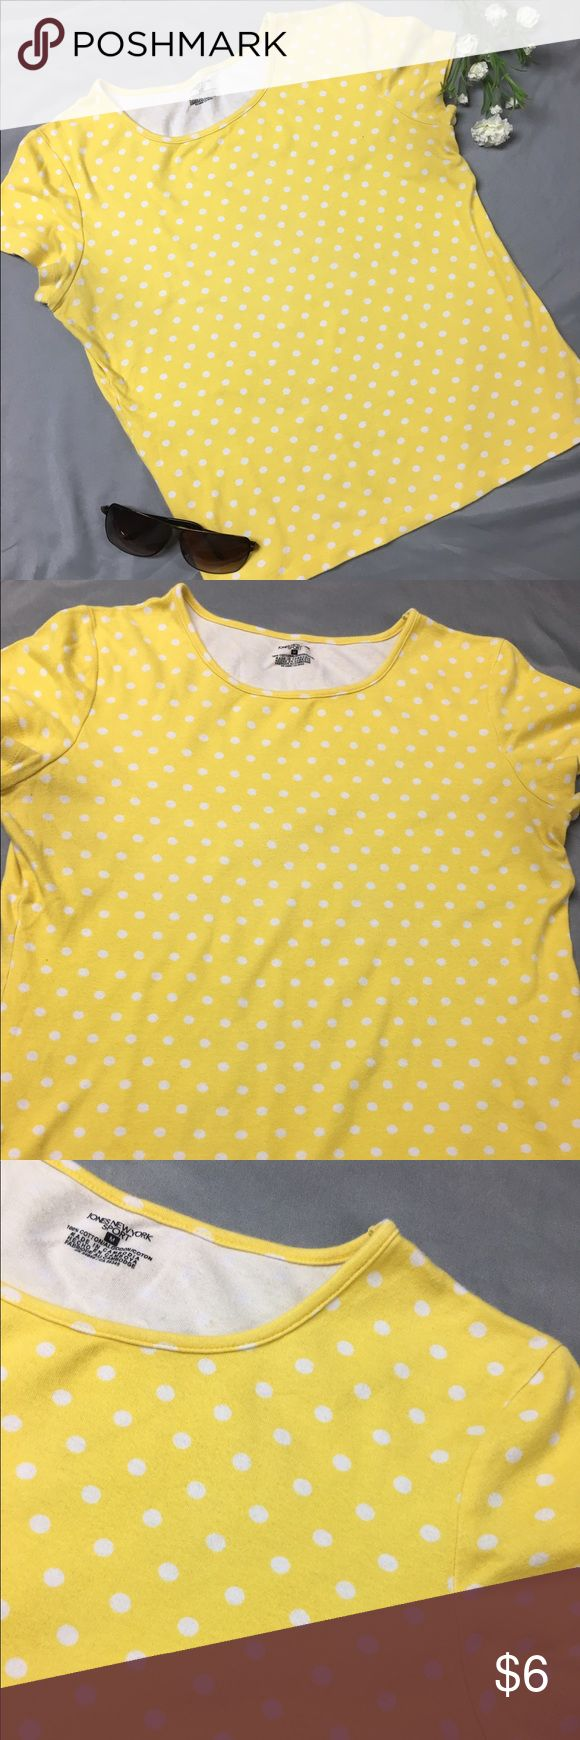 Sunshine Yellow and White Polka Dot Tee Yellow short sleeve shirt with white polka dots. Pair with an awesome pair of skinny jeans and cute flats for the perfect summer outfit. Jones New York Tops Tees - Short Sleeve